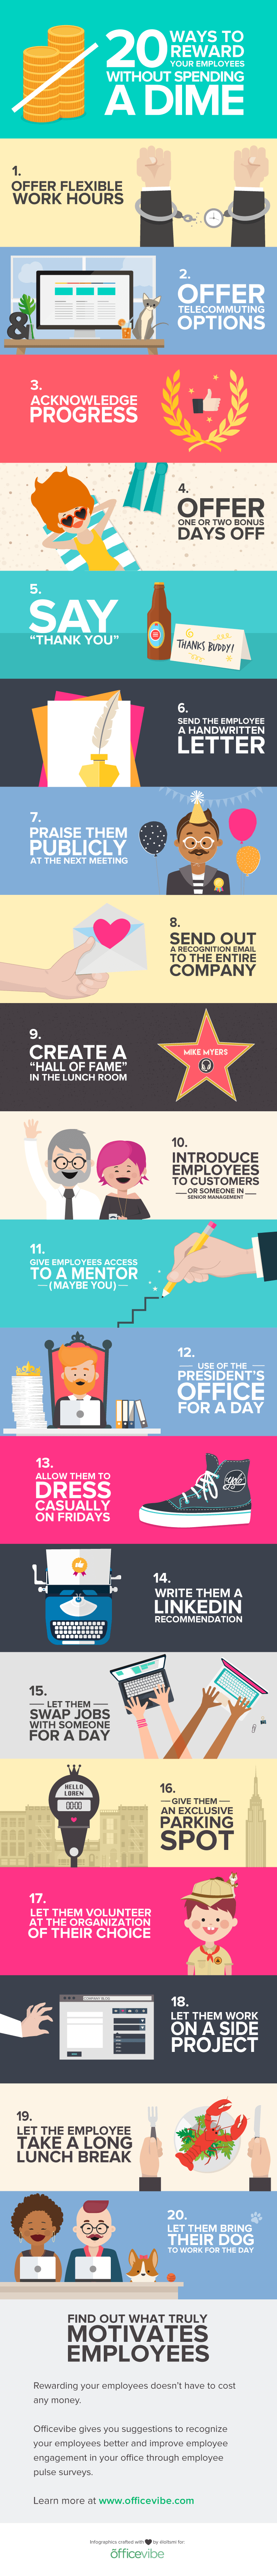 20 Ways to Reward Your Employees Without Spending a Dime (Infographic)